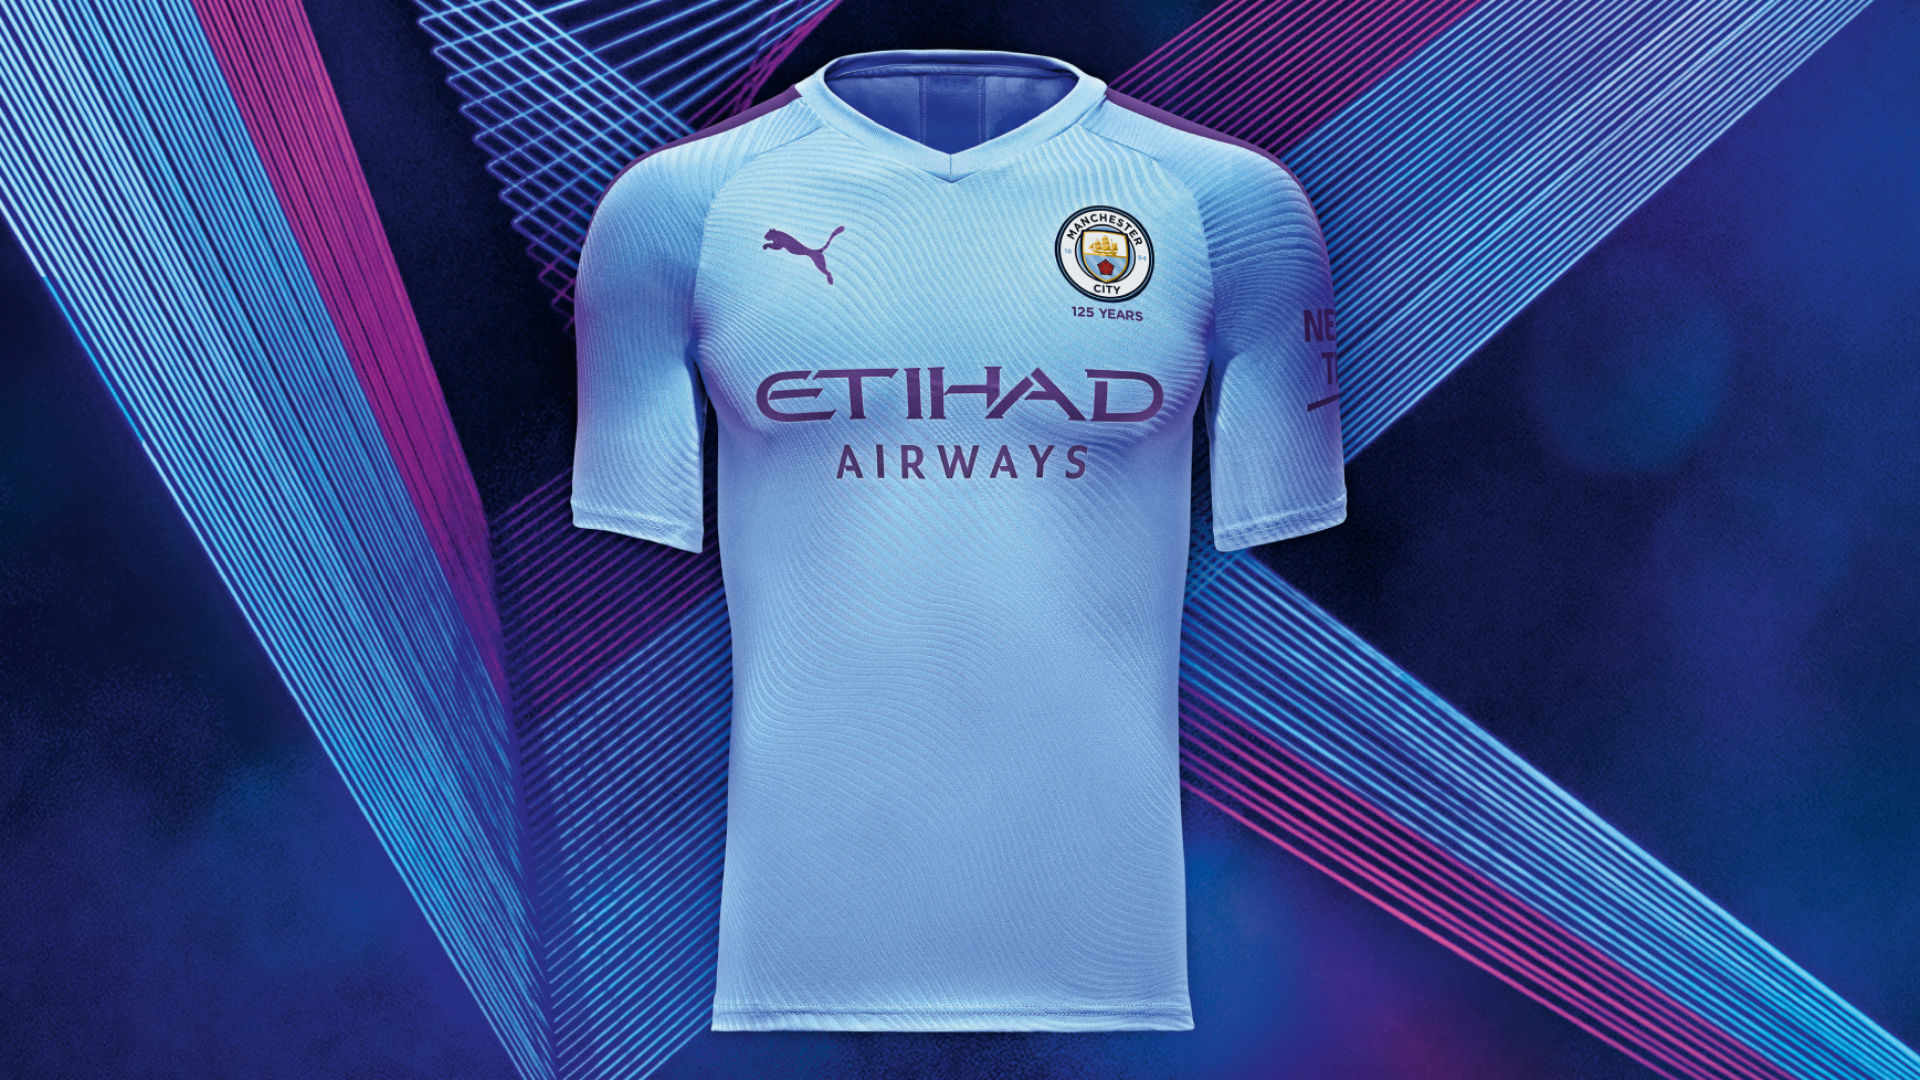 sale retailer 621f1 264f2 Man City kits 2019-20: Treble winners reveal 125-year ...